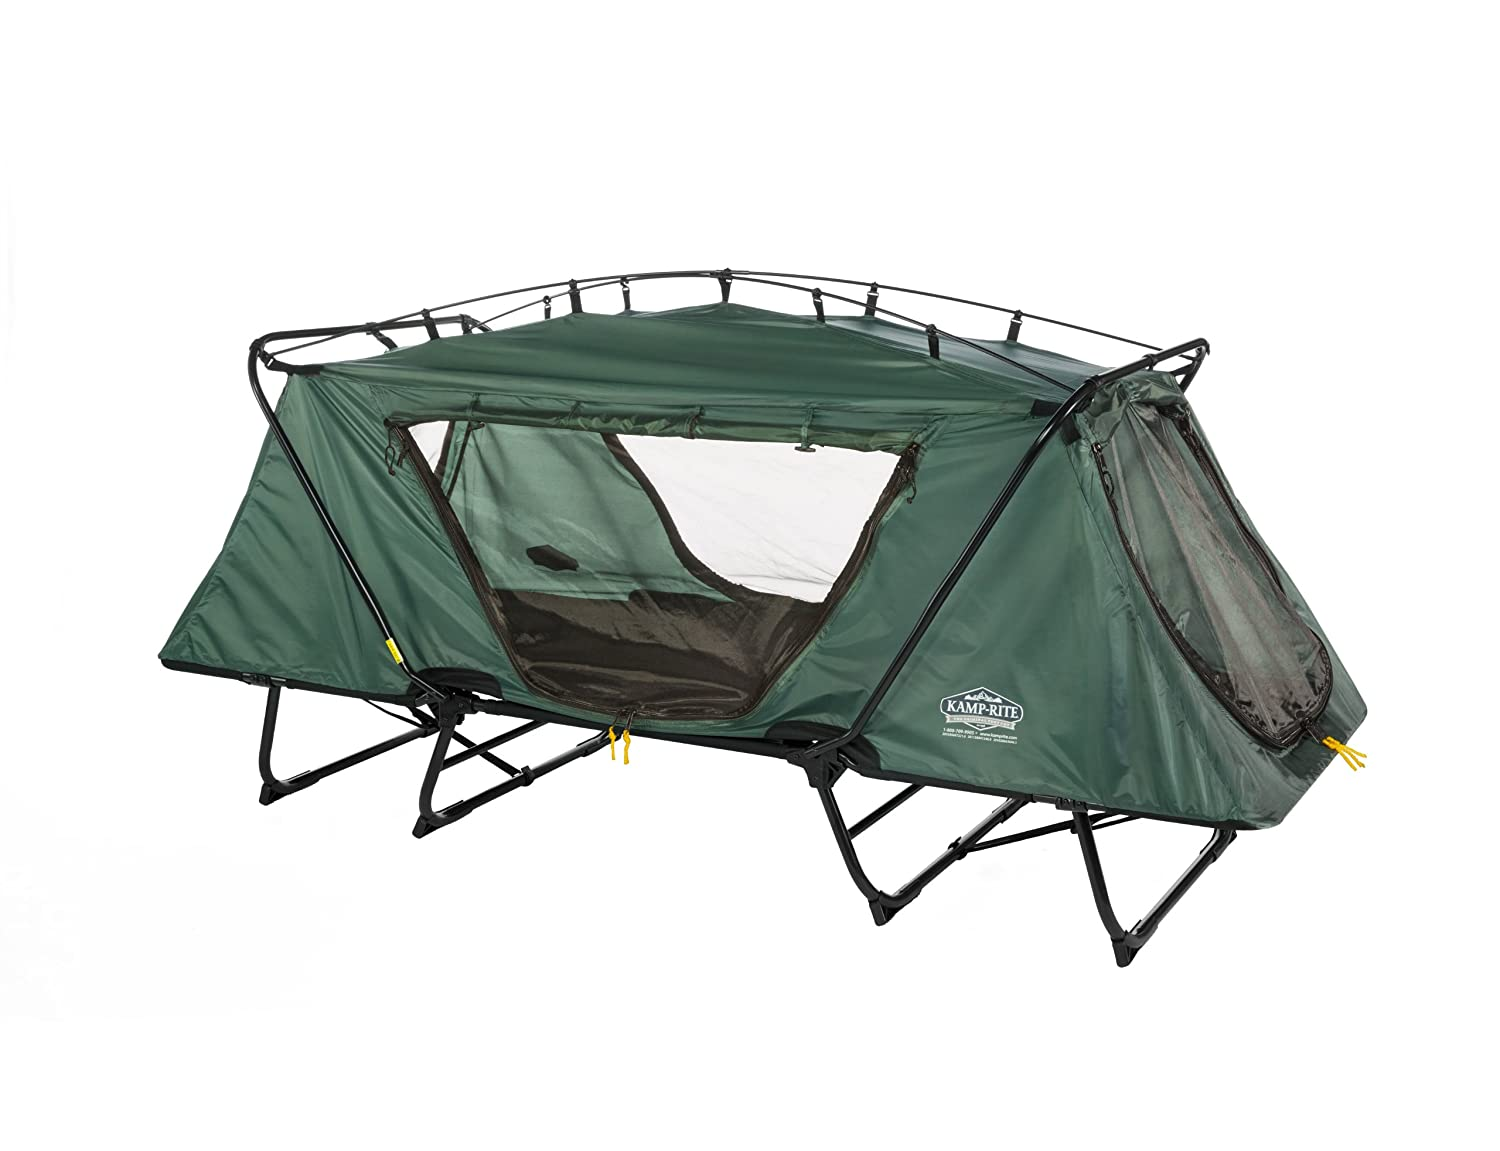 Oversize Tent Travel Cot Camping Gear Hiking Outdoor ...